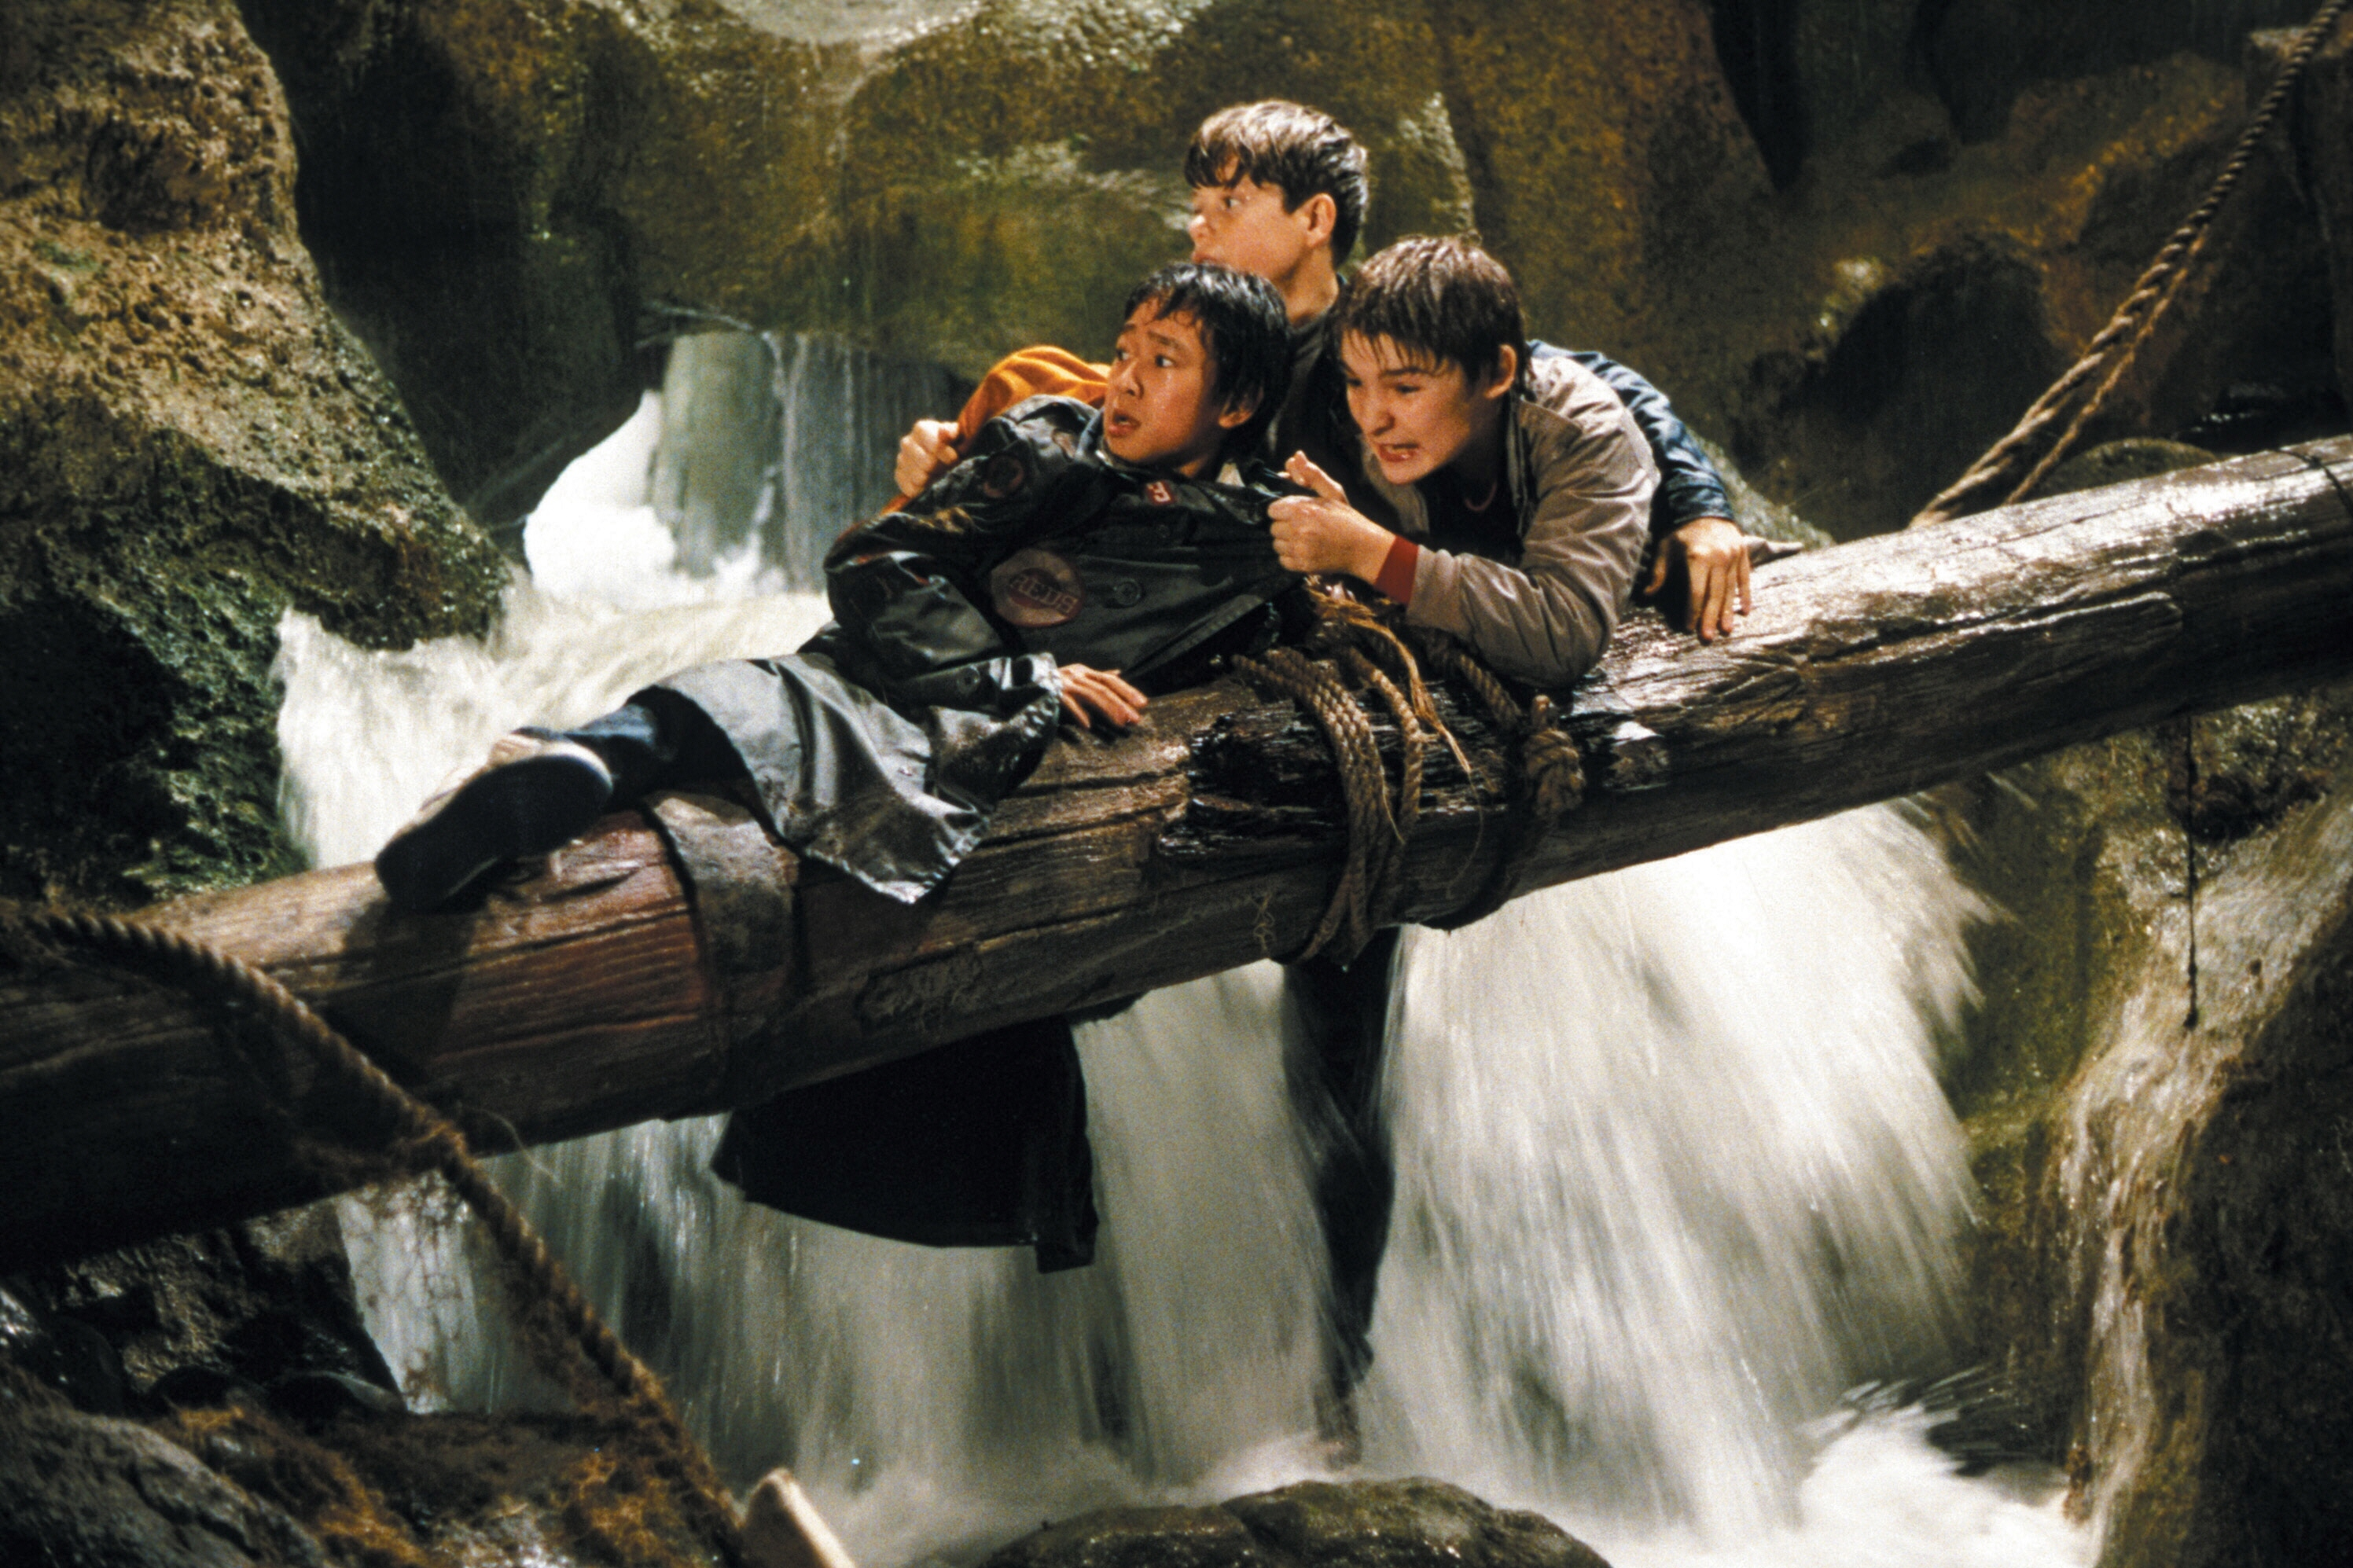 The Goonies Images The Goonies Hd Wallpaper And Background